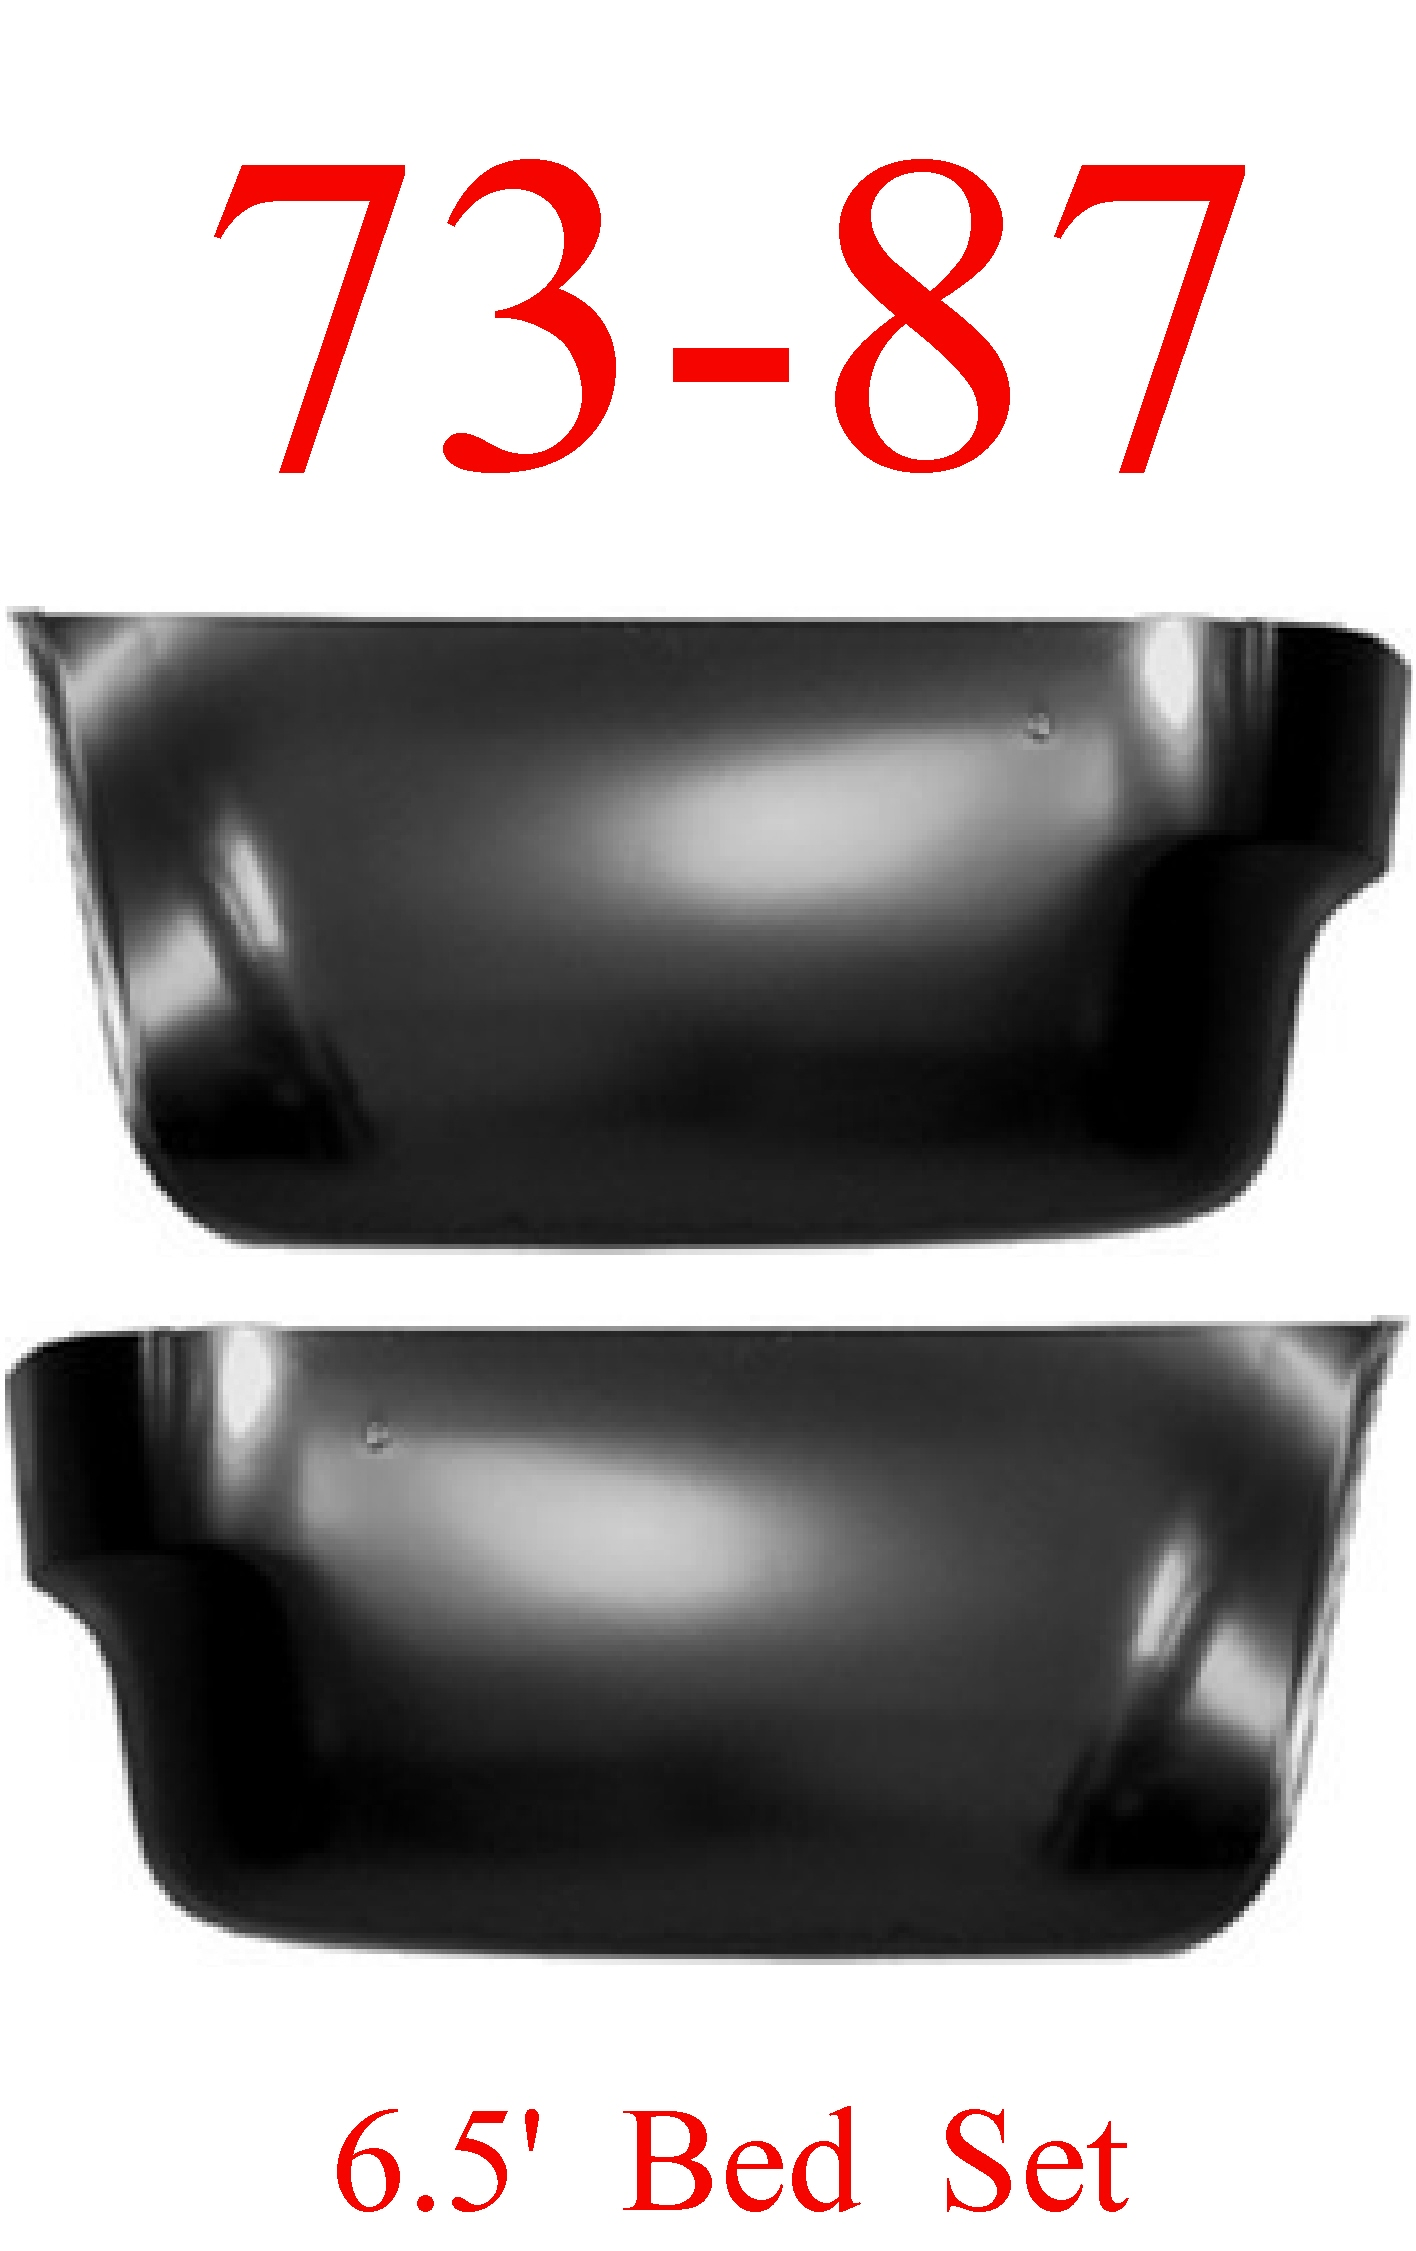 73-87 Chevy 6.5' Rear Lower Bed Side Panel Set